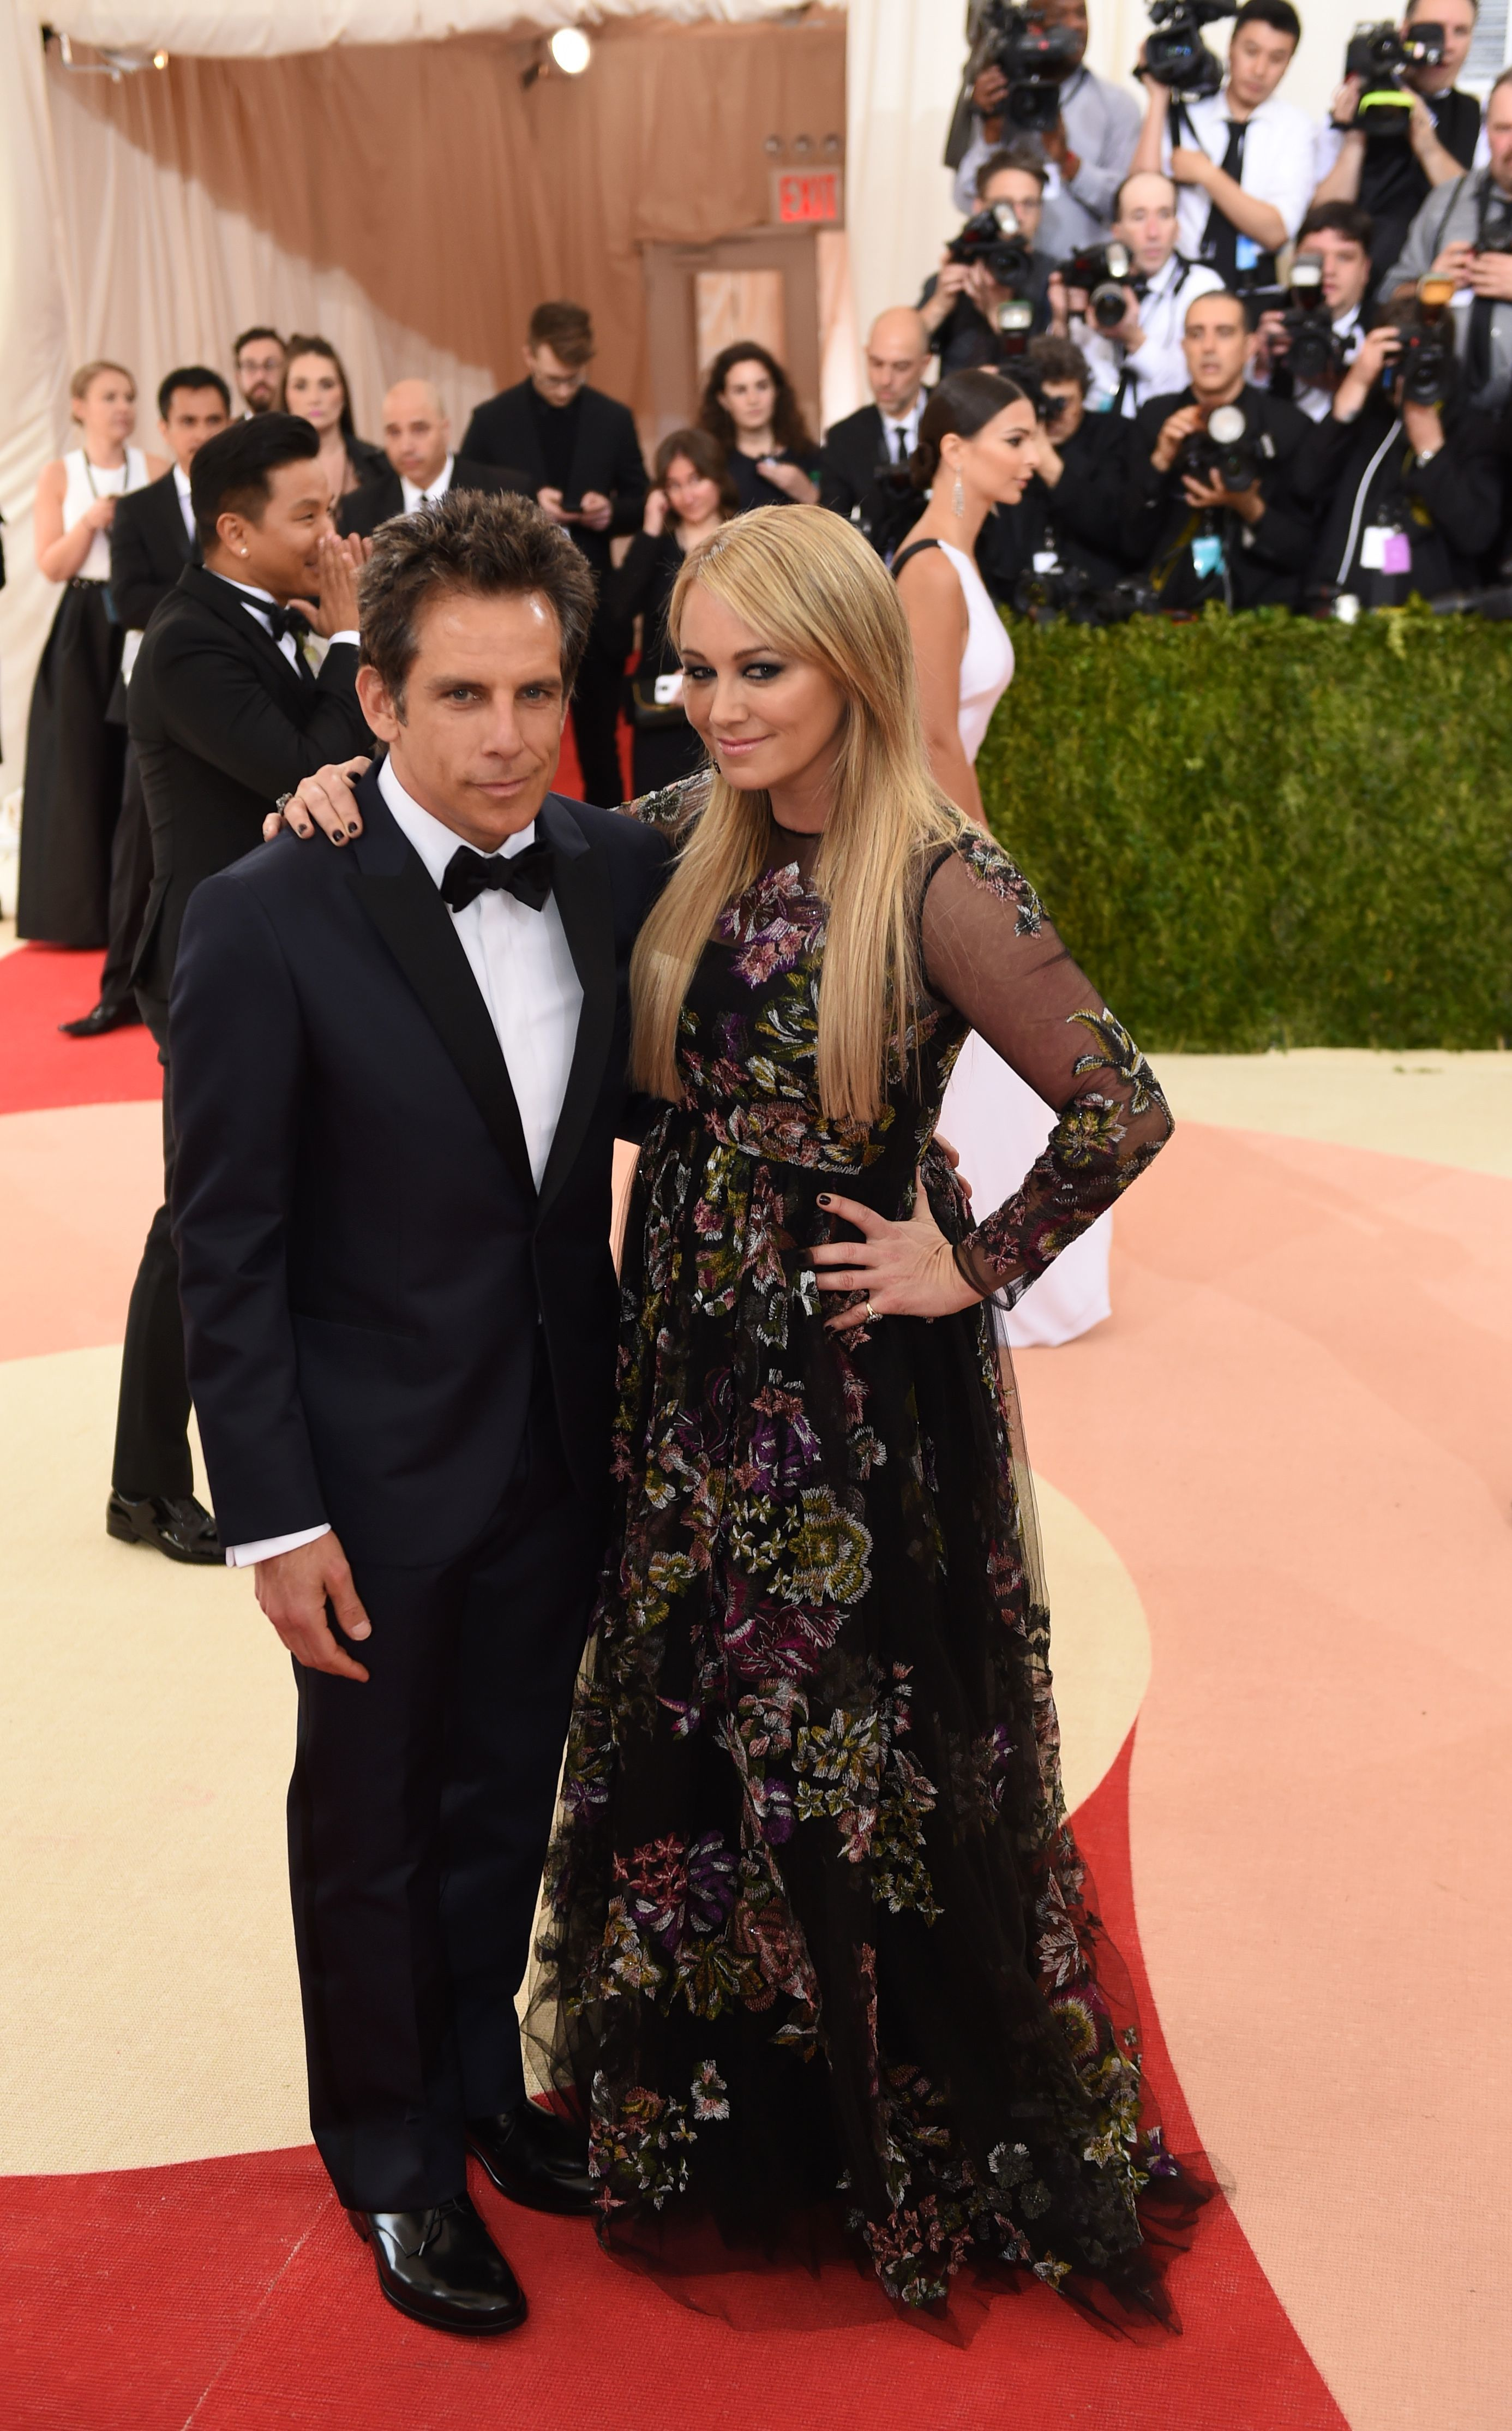 Ben Stiller and wife Christine Taylor arrive for the Costume Institute Benefit at the Metropolitan Museum of Art in New York on May 2, 2016.